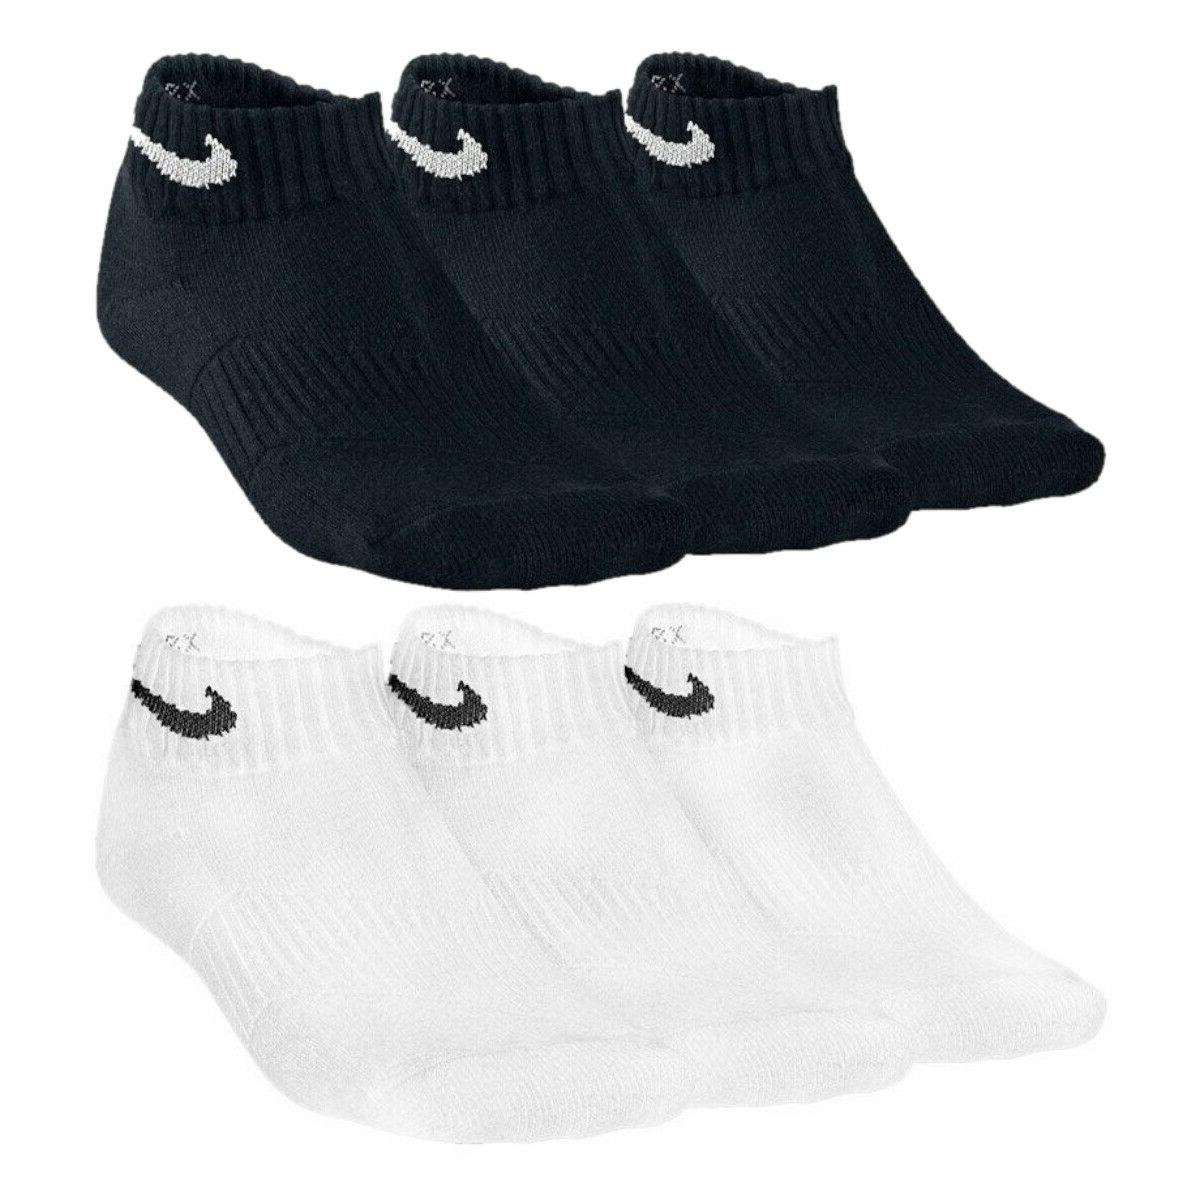 3 pack performance cotton youth low cut